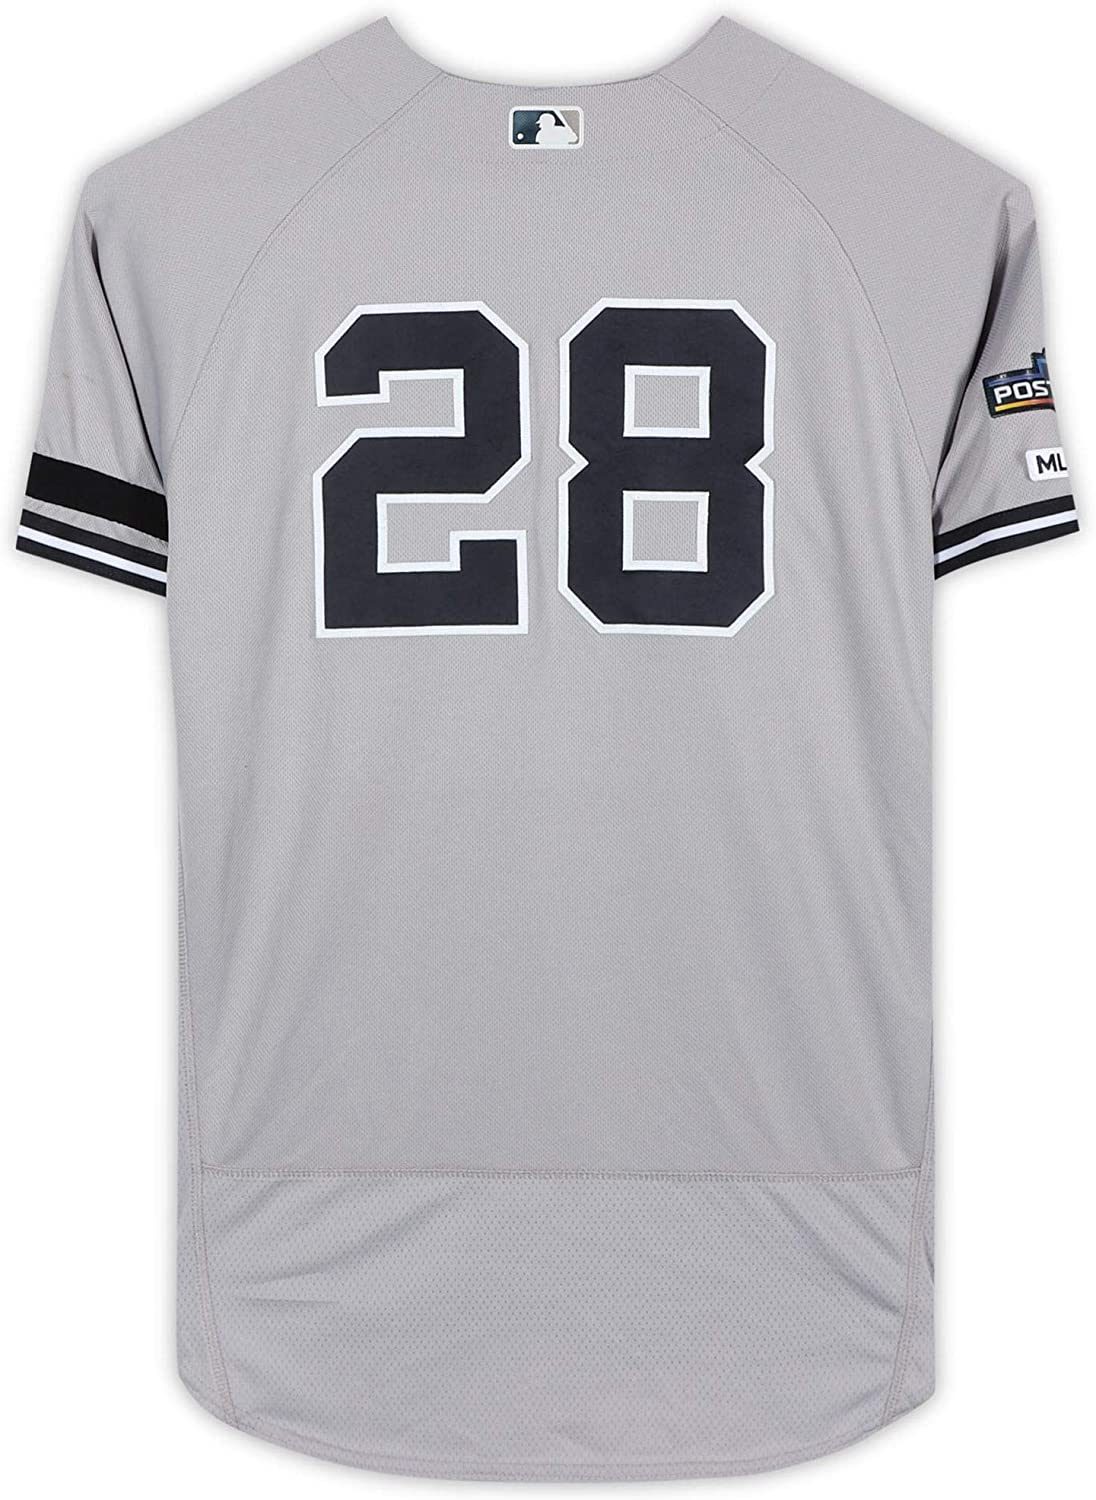 Austin Romine New York Yankees Game-Used #28 Gray Jersey vs. Texas Rangers on September 28, 2019 - Size 46 - Fanatics Authentic Certified